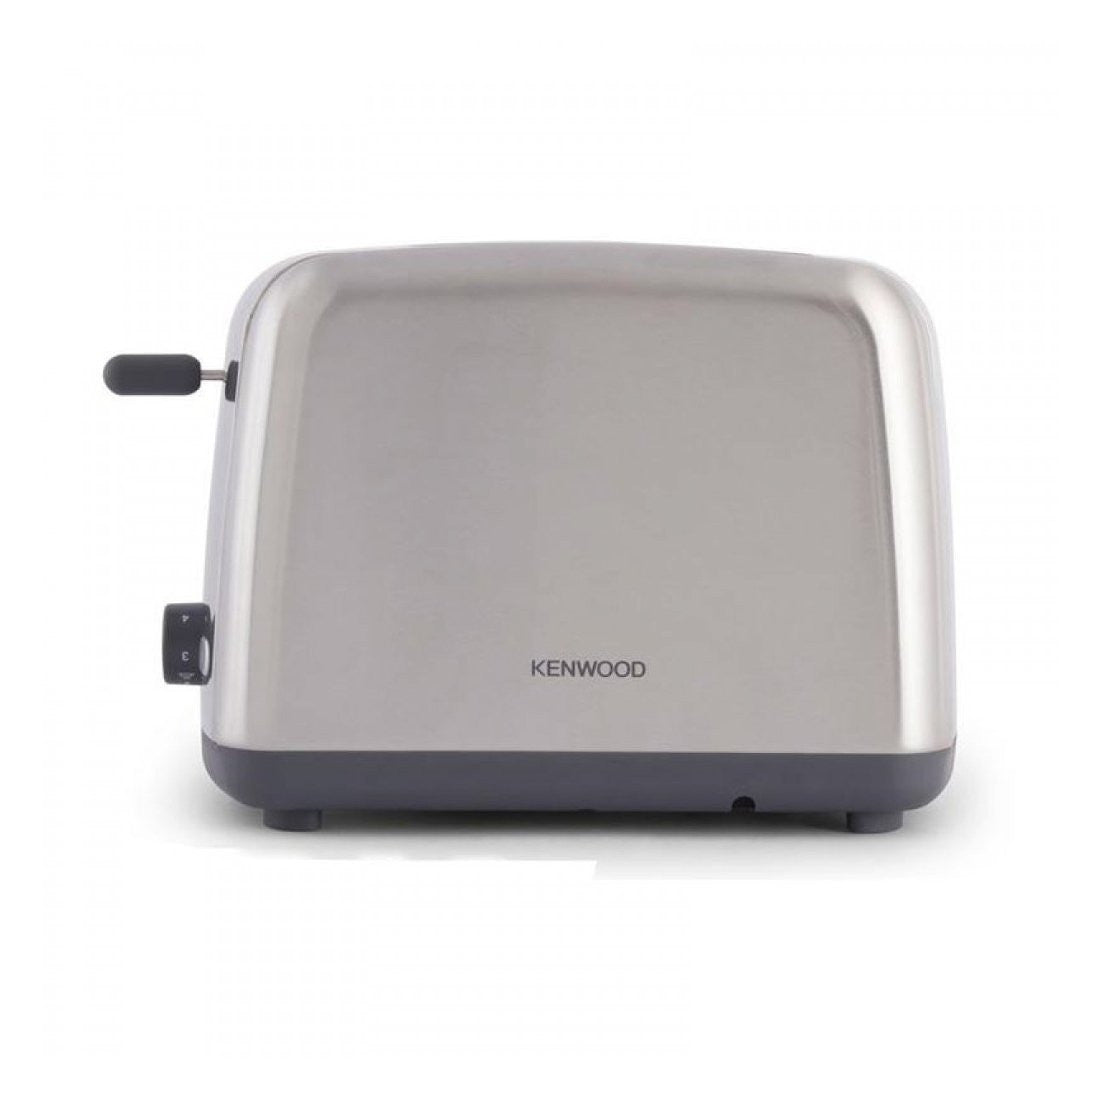 KENWOOD TOASTER TTM440 - Homely Nigeria